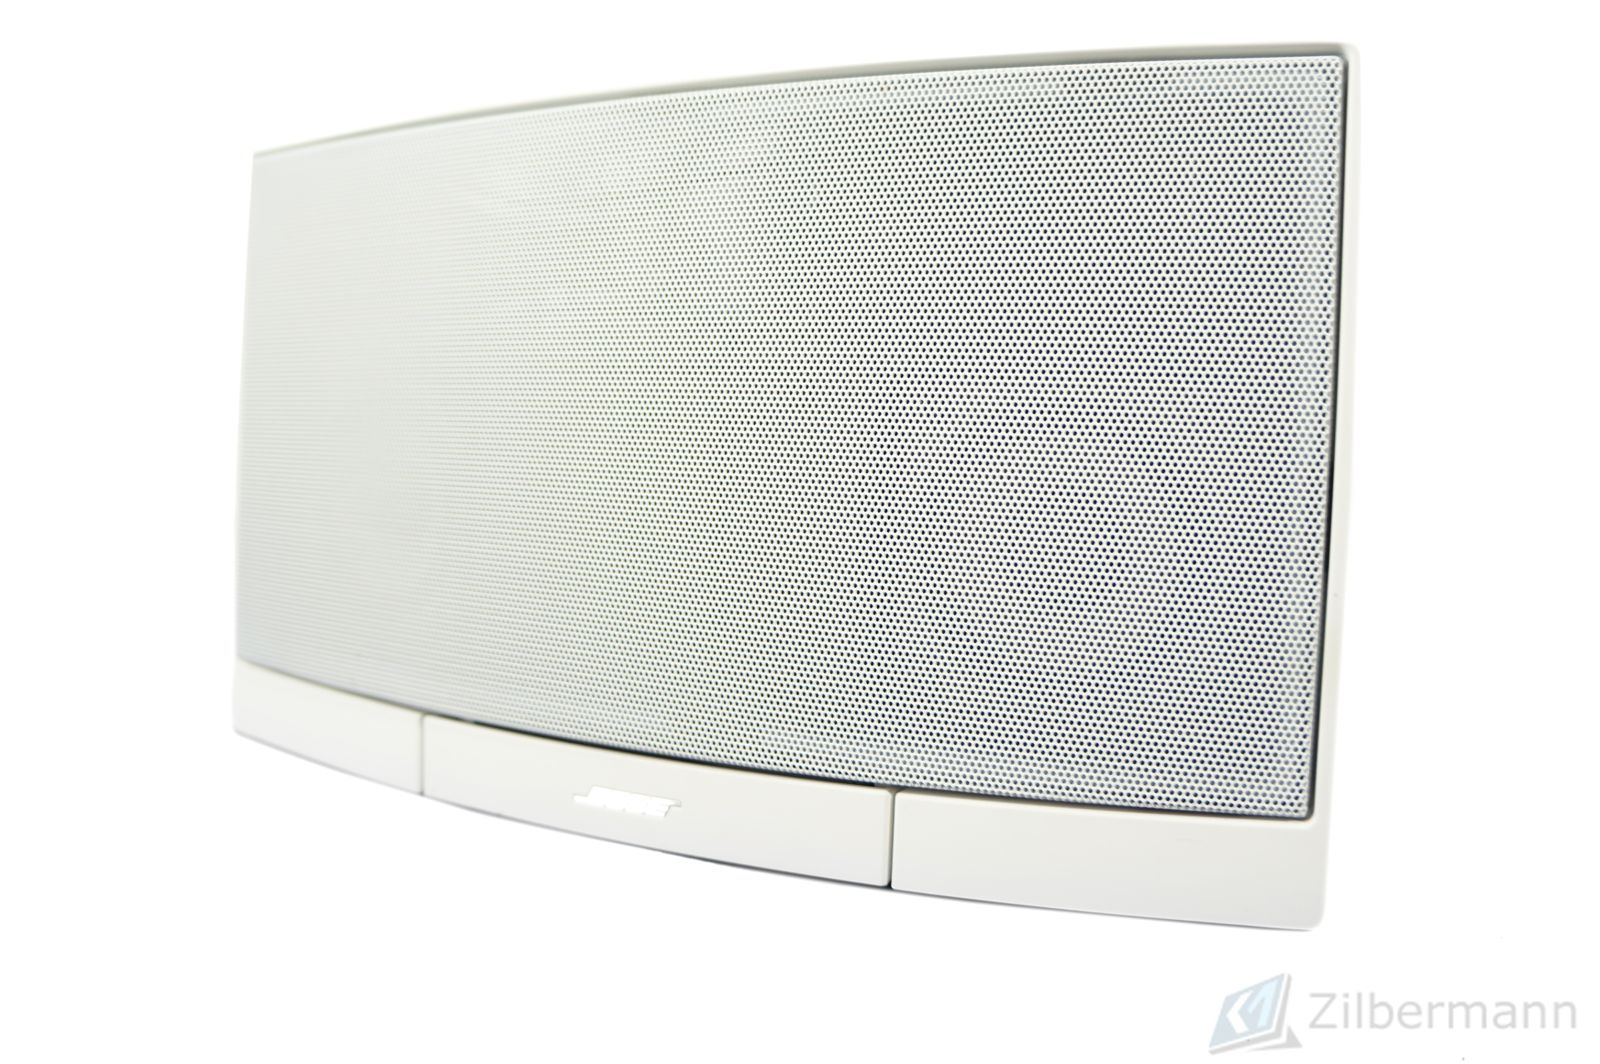 Bose_Lifestyle_Roommate_Powered_Speaker_System_Weiss_03_hN5VVuQ